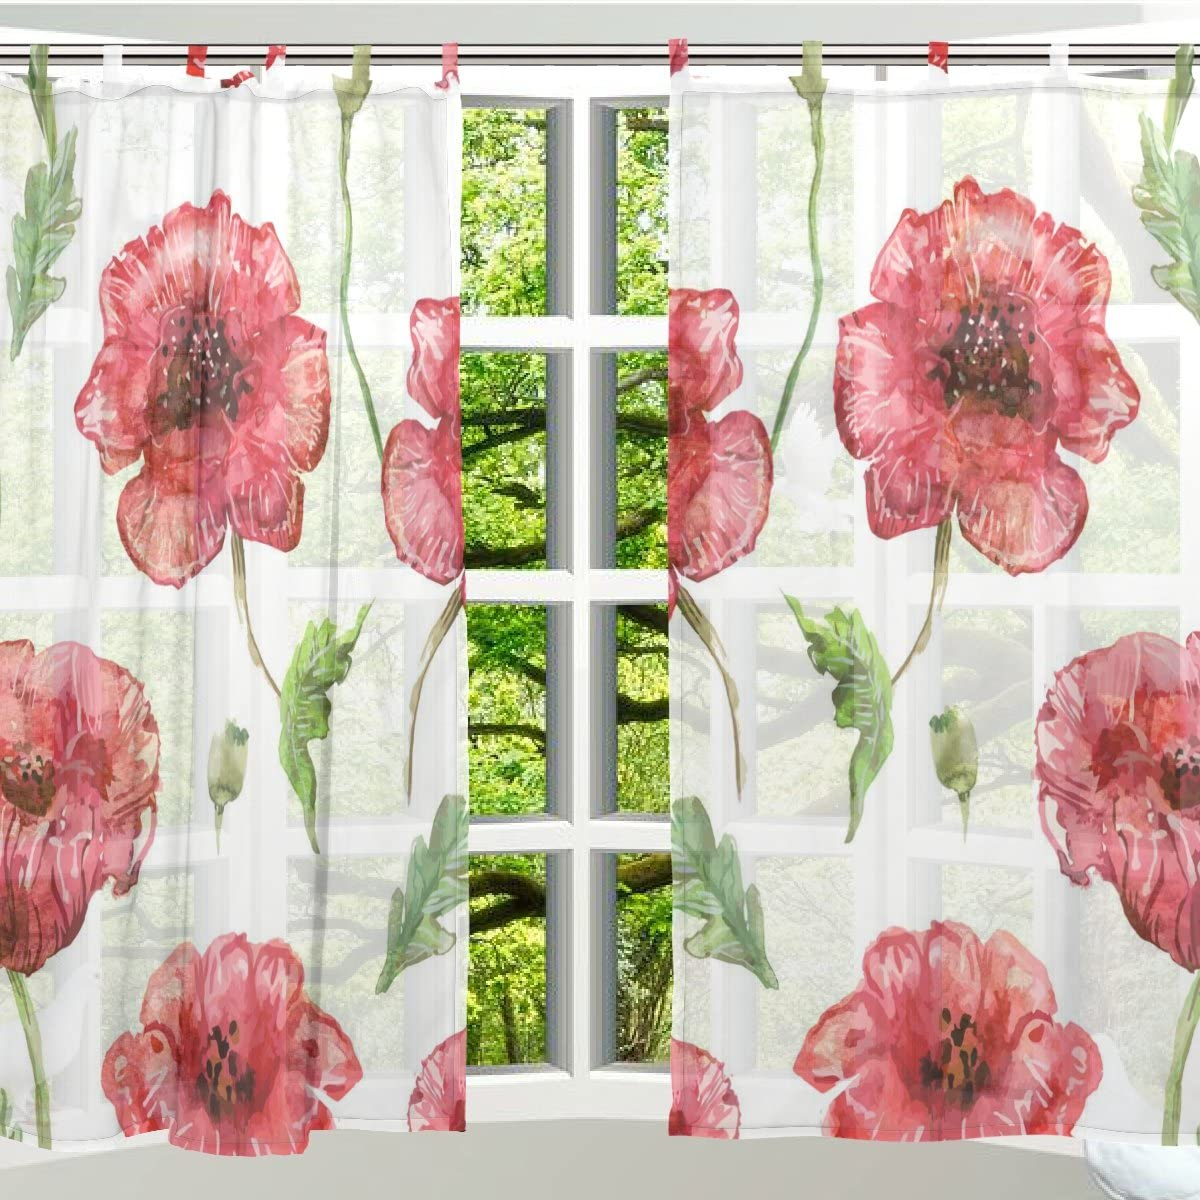 ALAZA 2 PCS Window Decoration Sheer Curtain Panels,Vintage Floral Red,Polyester Window Gauze Curtains Living Room Bedroom Kid s Office Window Tie Top Curtain 55×78 inch Two Panels Set